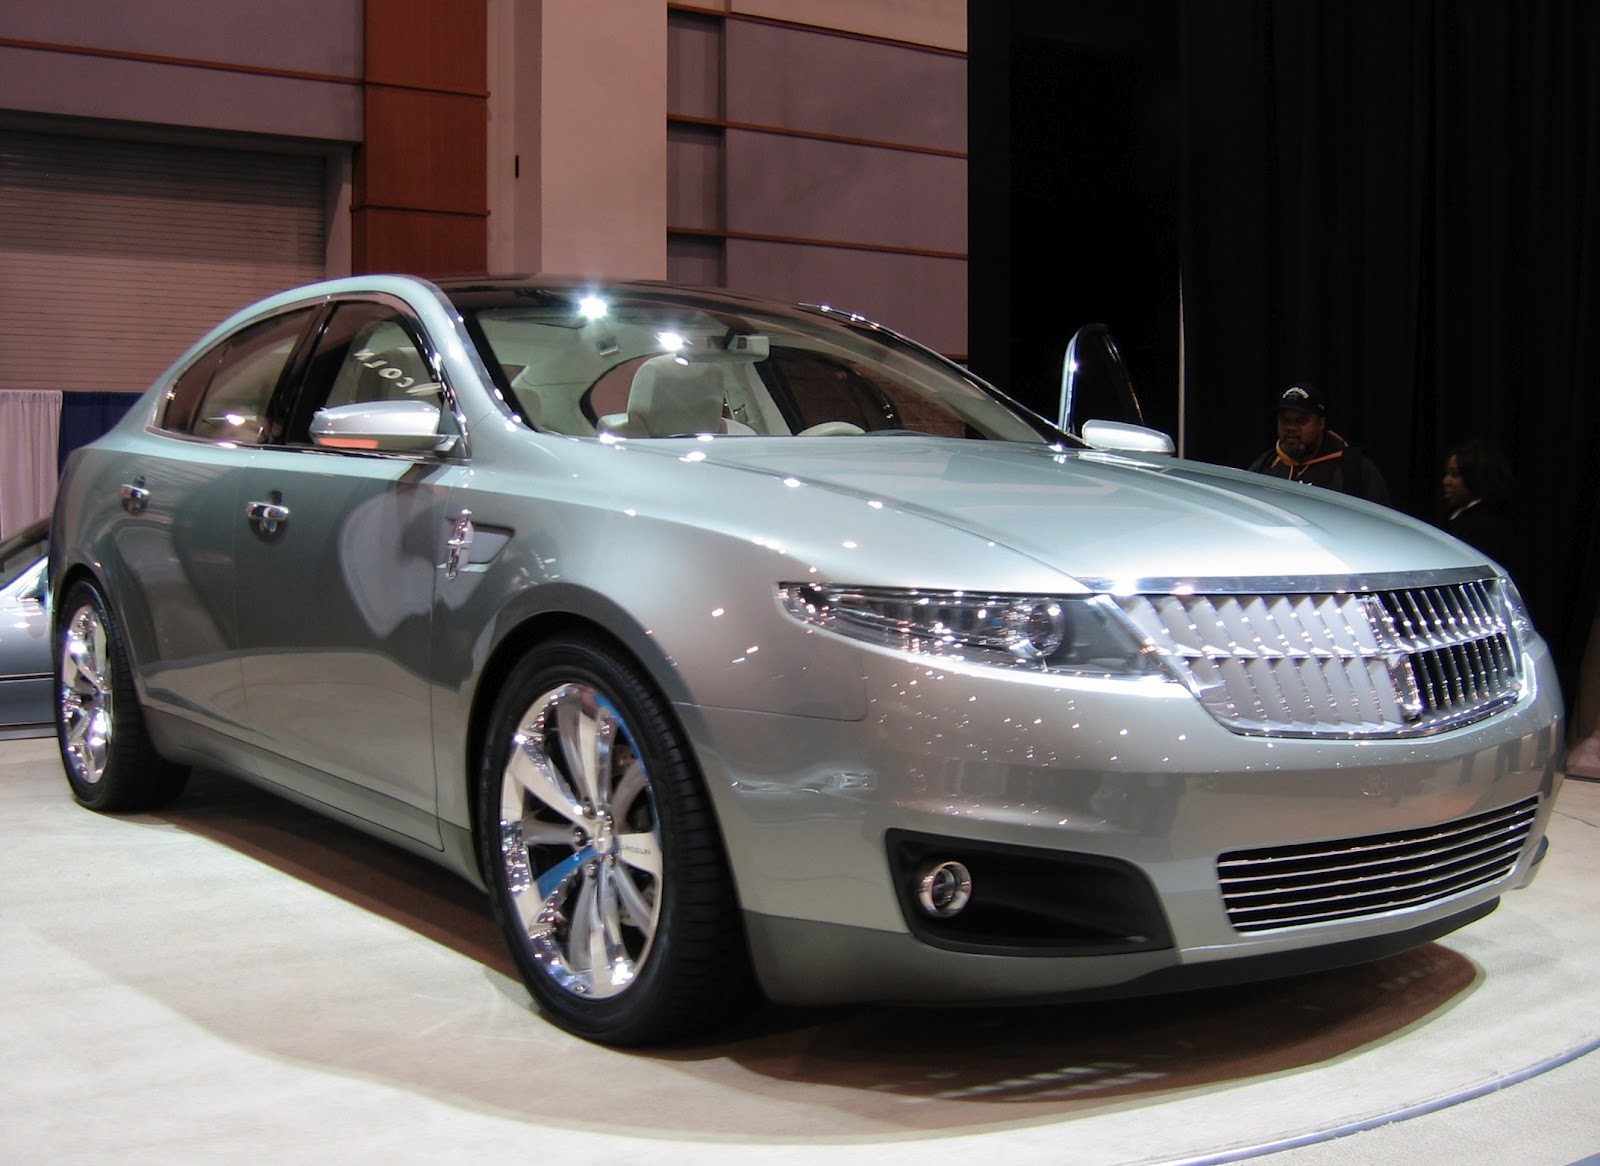 Best Car Models & All About Cars: Lincoln 2012 MKZ